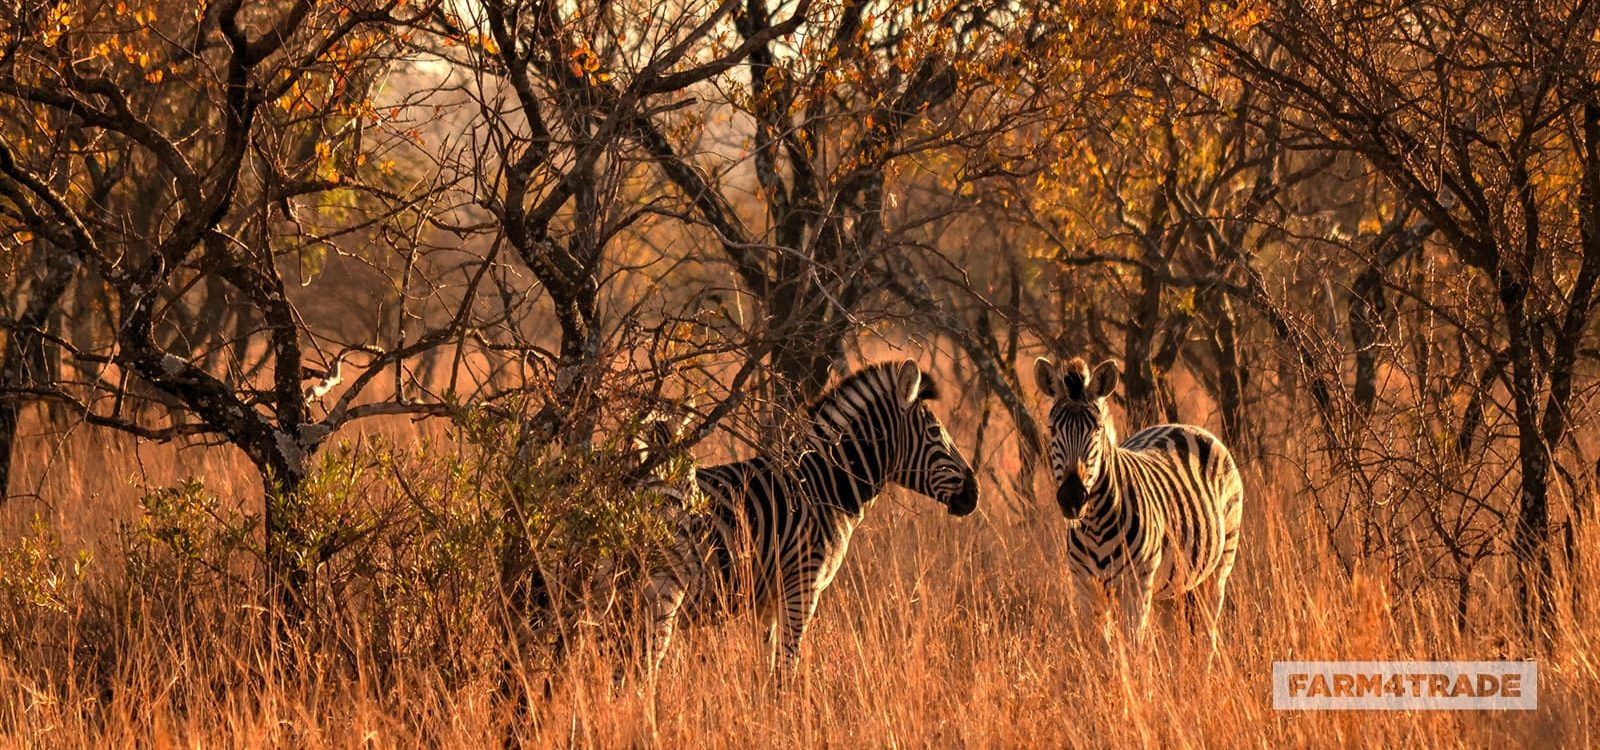 Trophy-hunting-a-controversial-practice-Farm4Trade